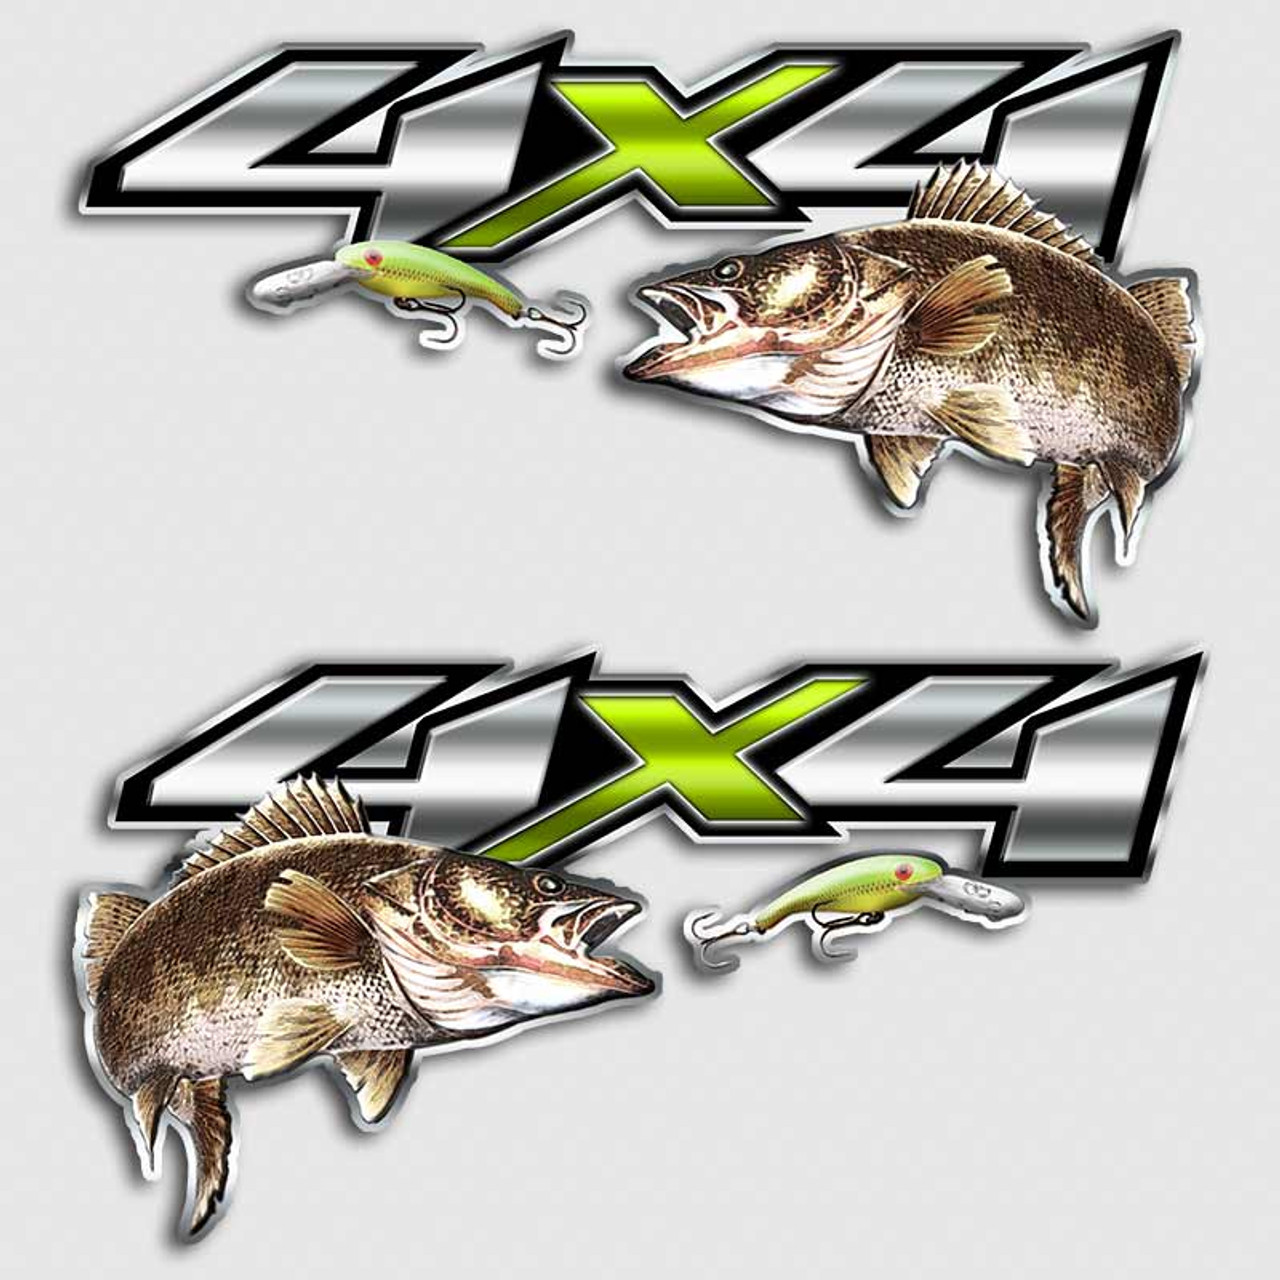 Chevy X Walleye Truck Decals Chartreuse Fishing Lure Stickers - Fishing decals for trucks